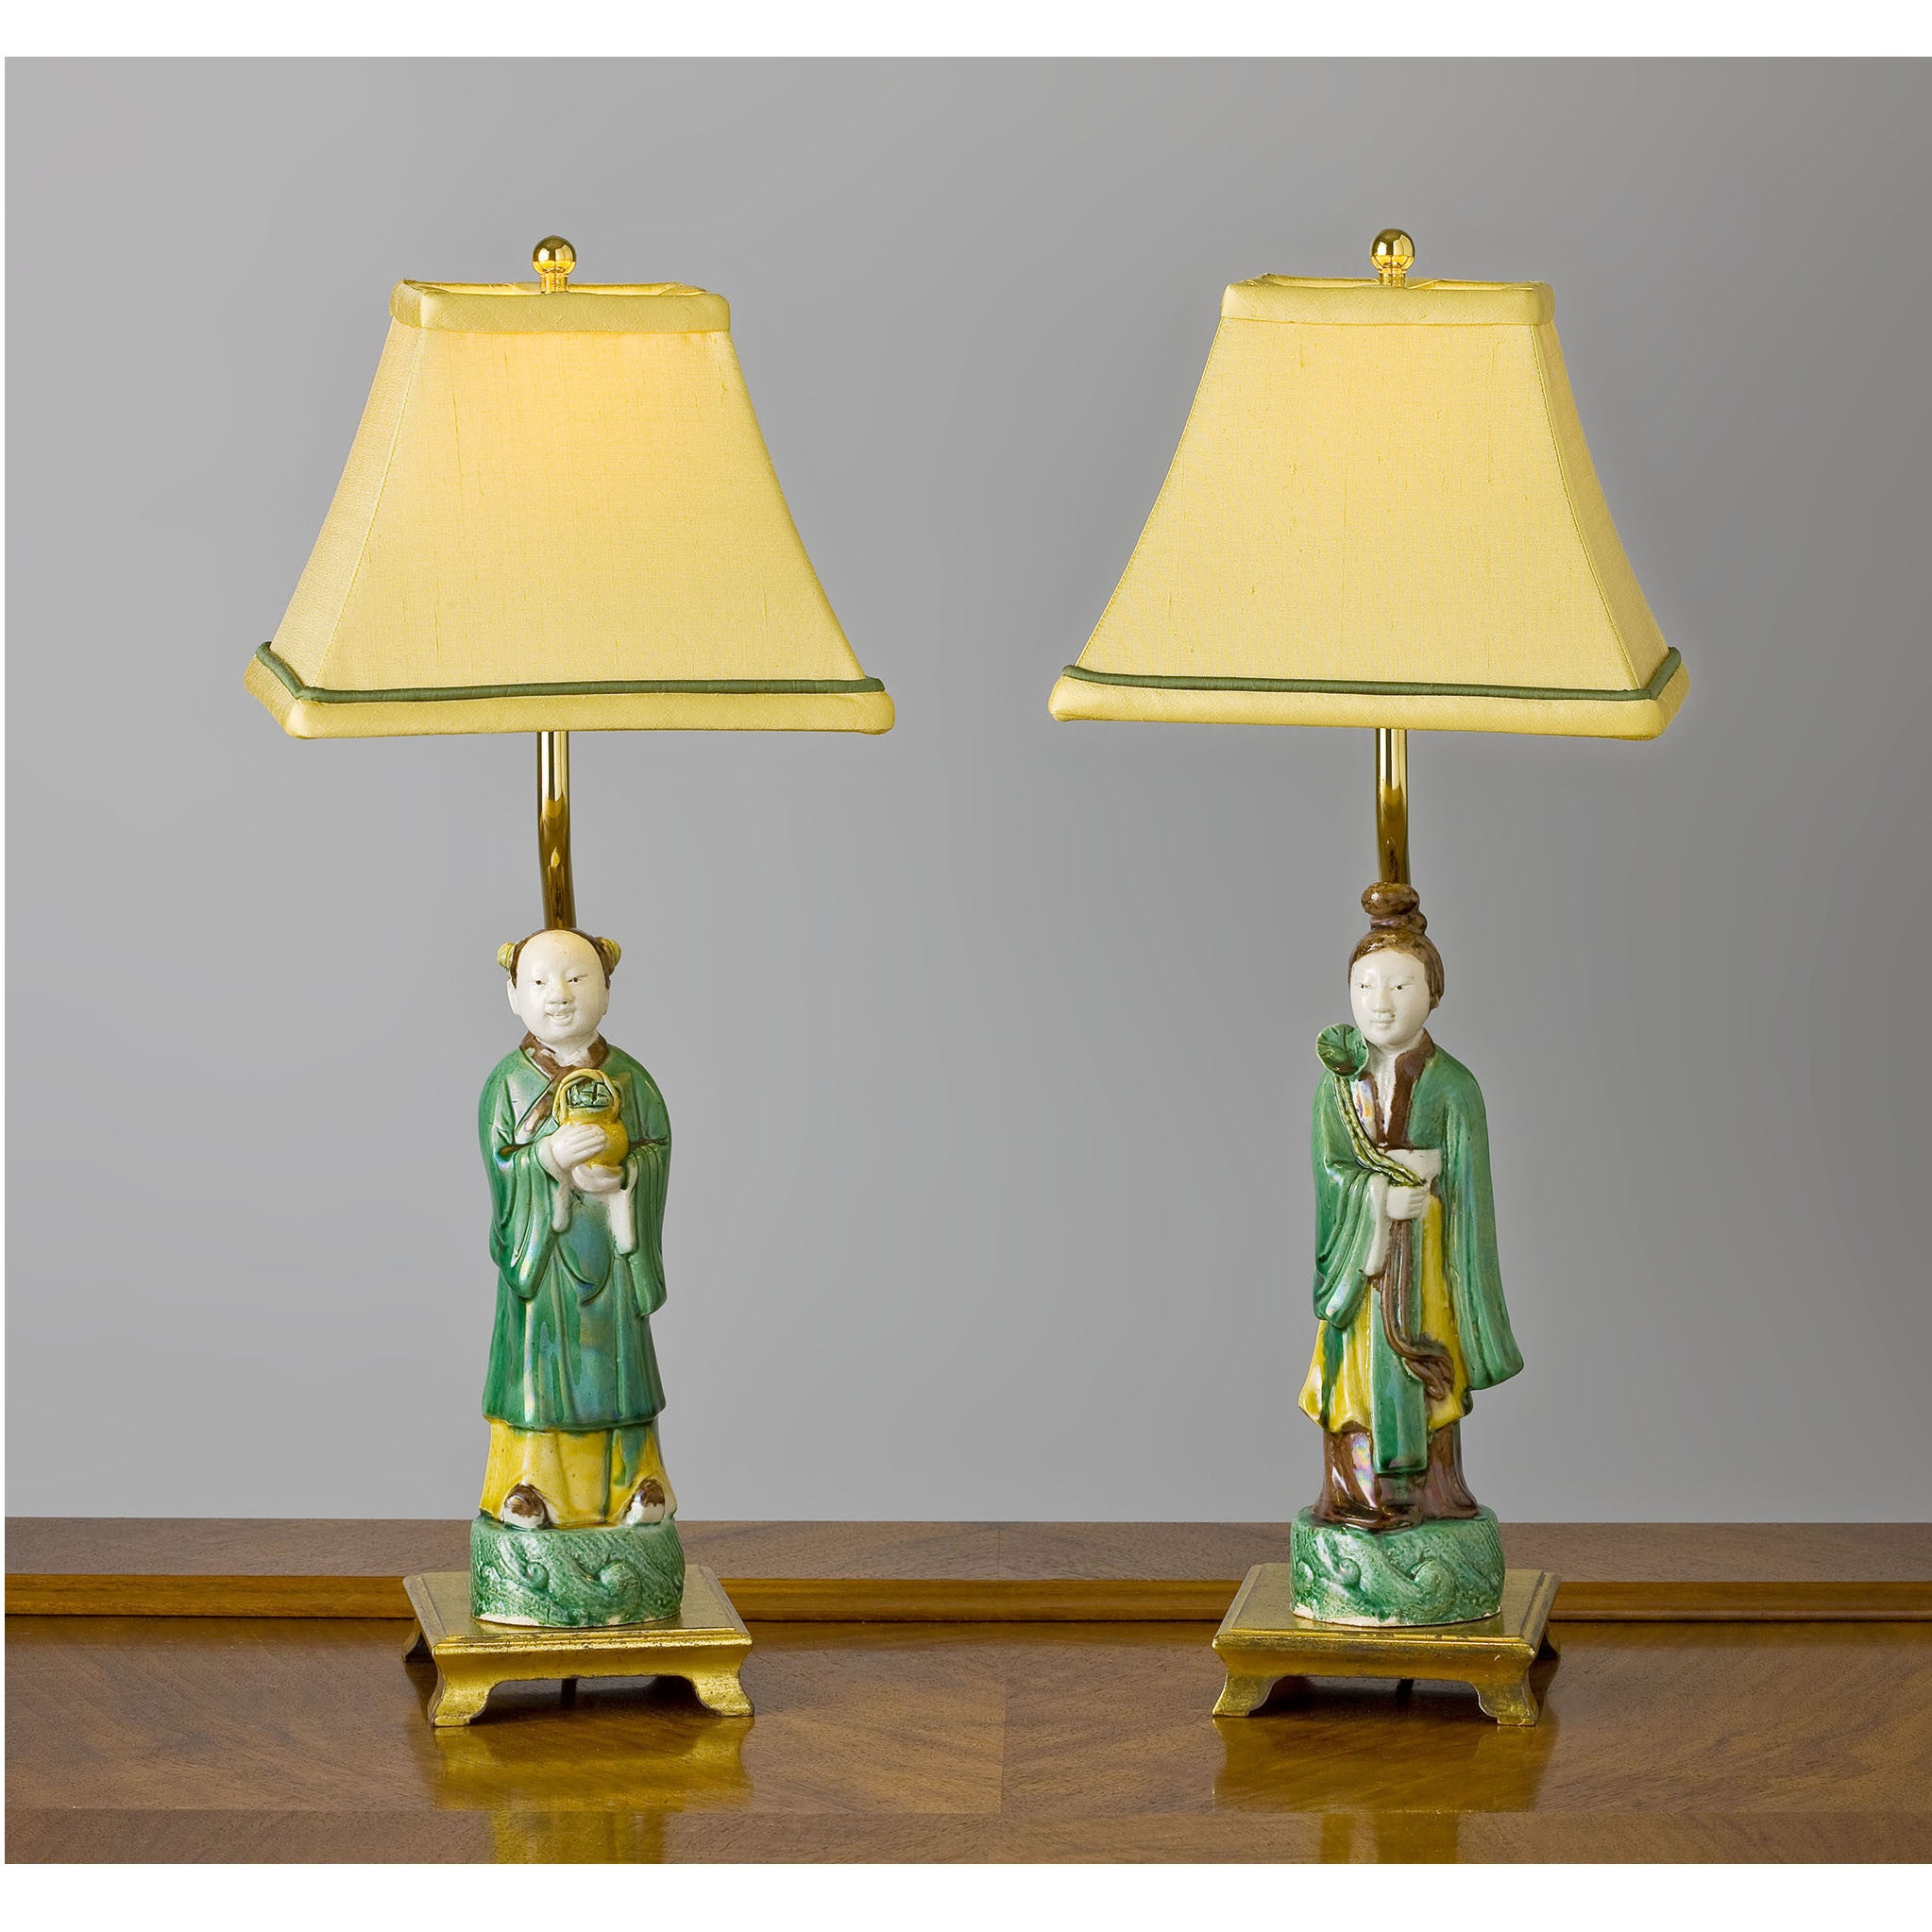 "C092 A Delightful Pair of  Antique ""Chinese Immortals"" Accent Lamps - Circa 1850"